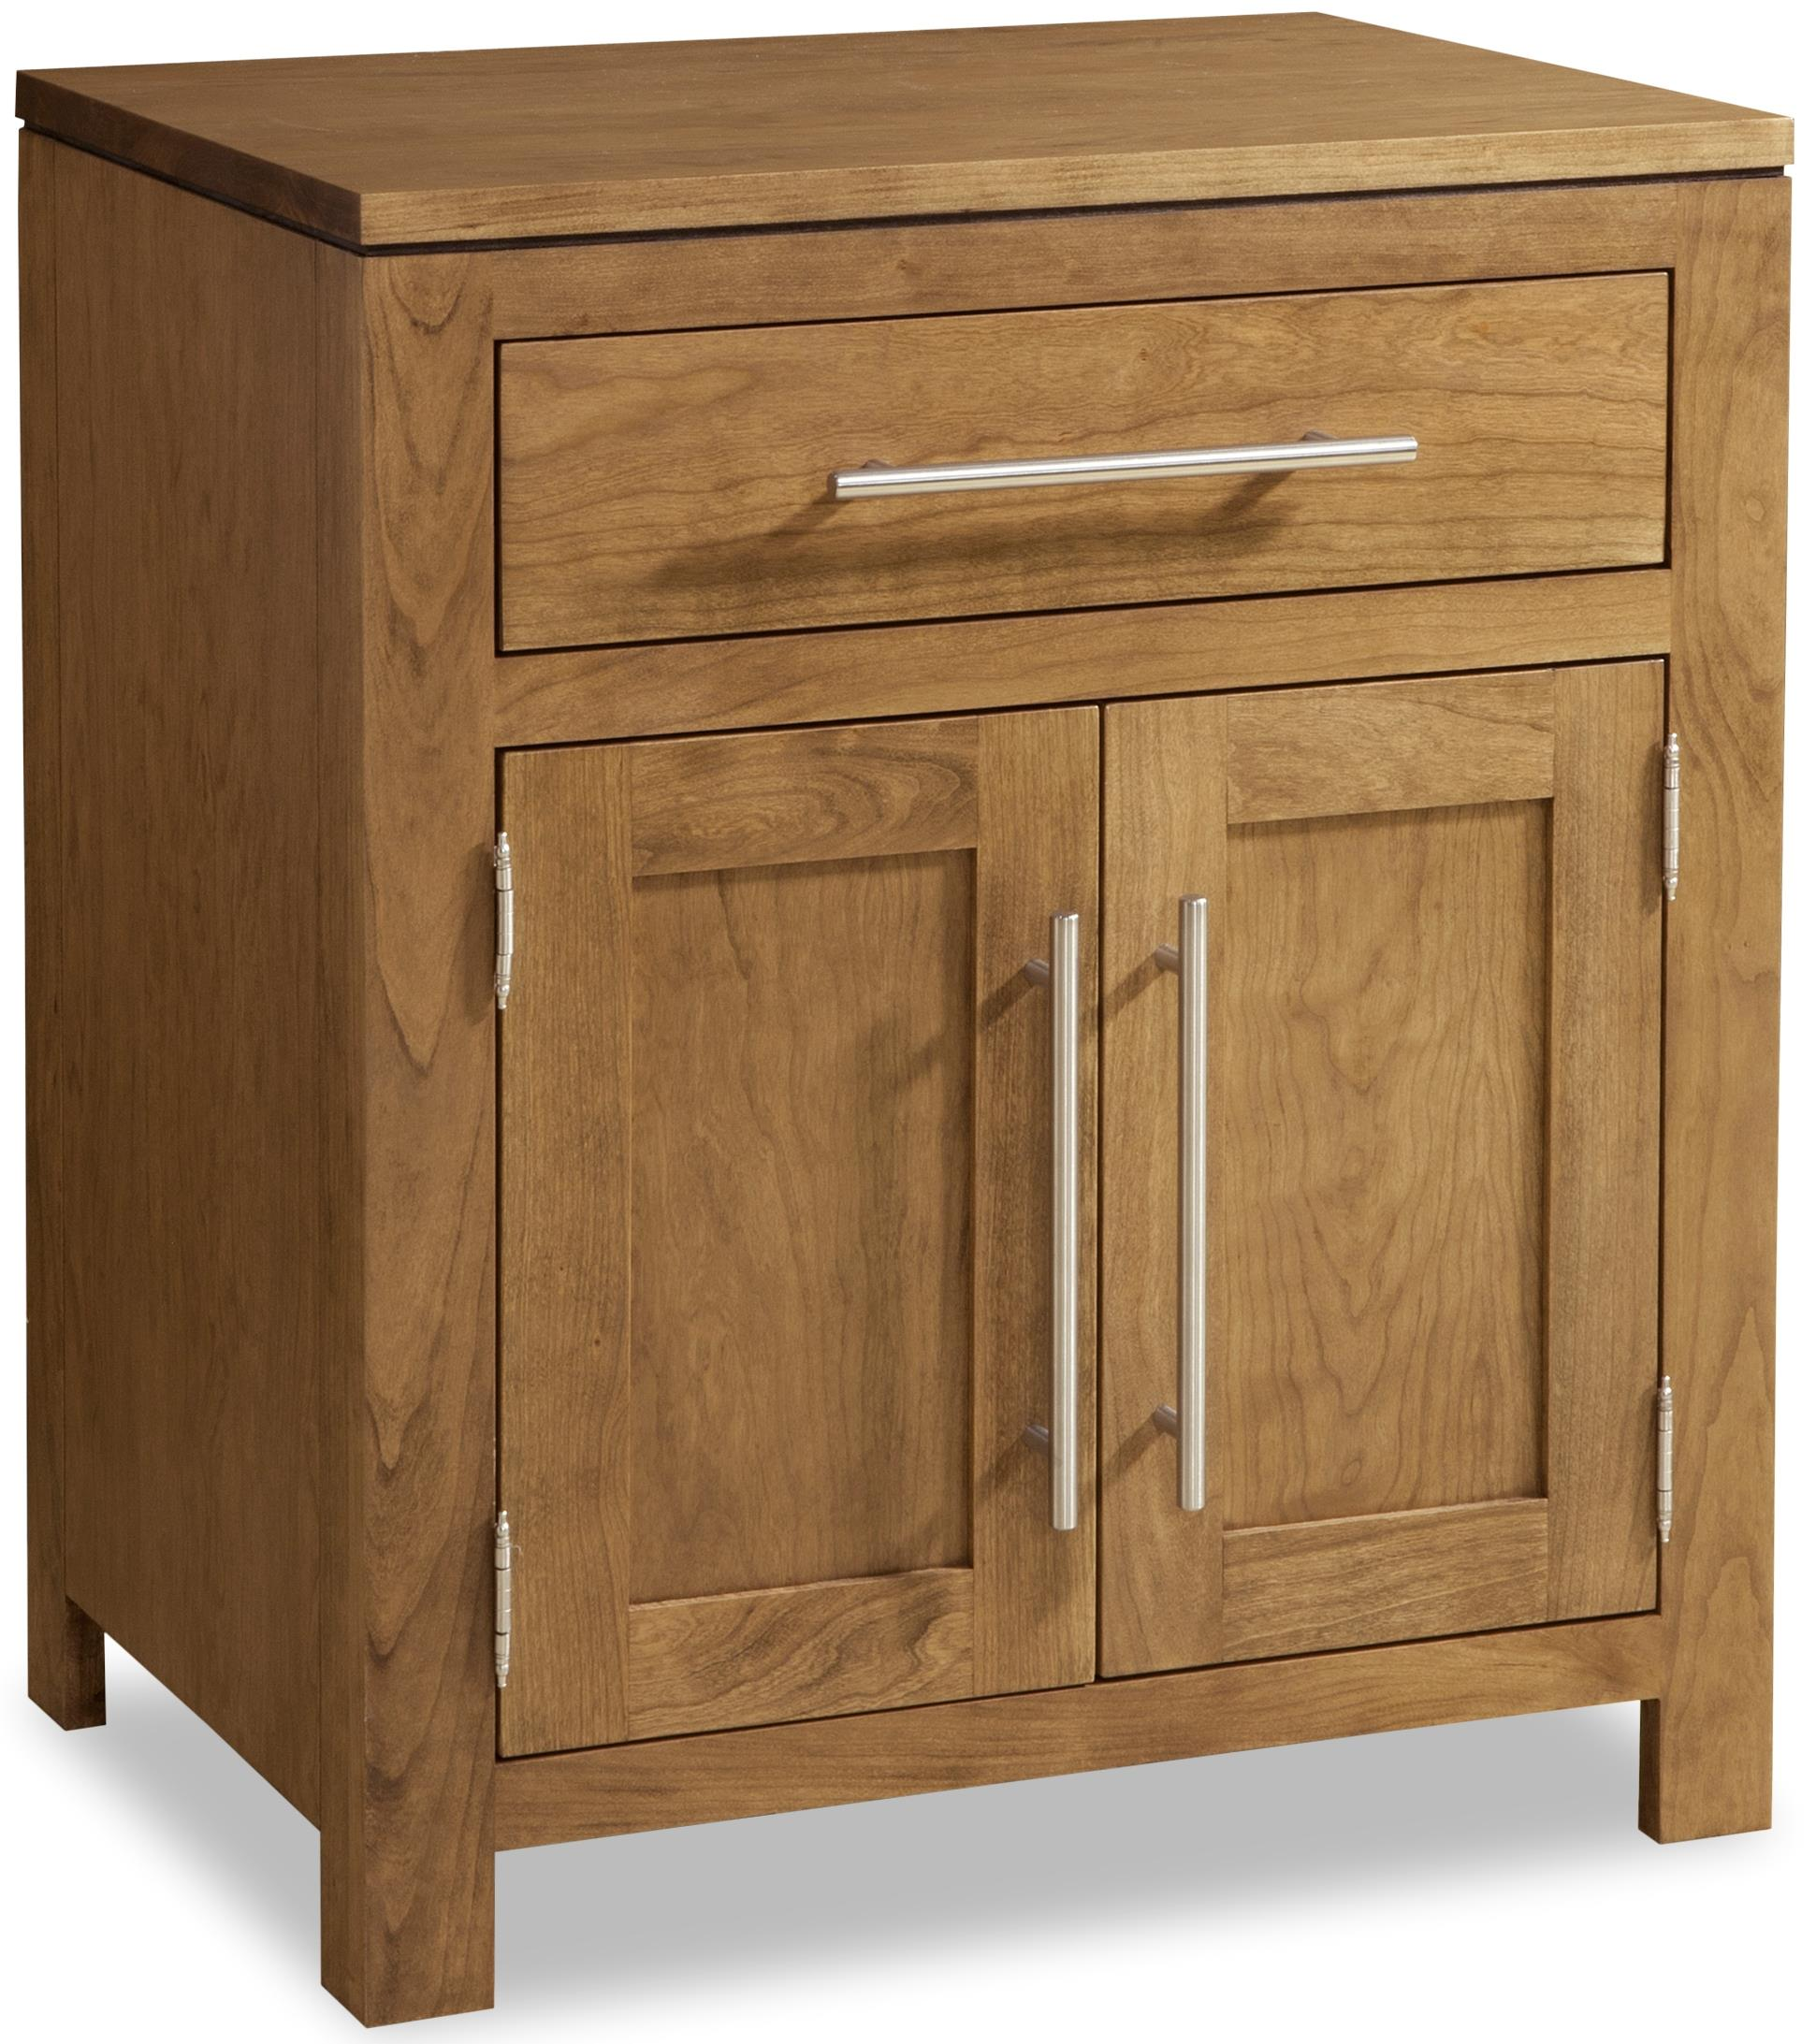 Daniel s Amish Modern 1 Drawer Nightstand with 2 Doors H